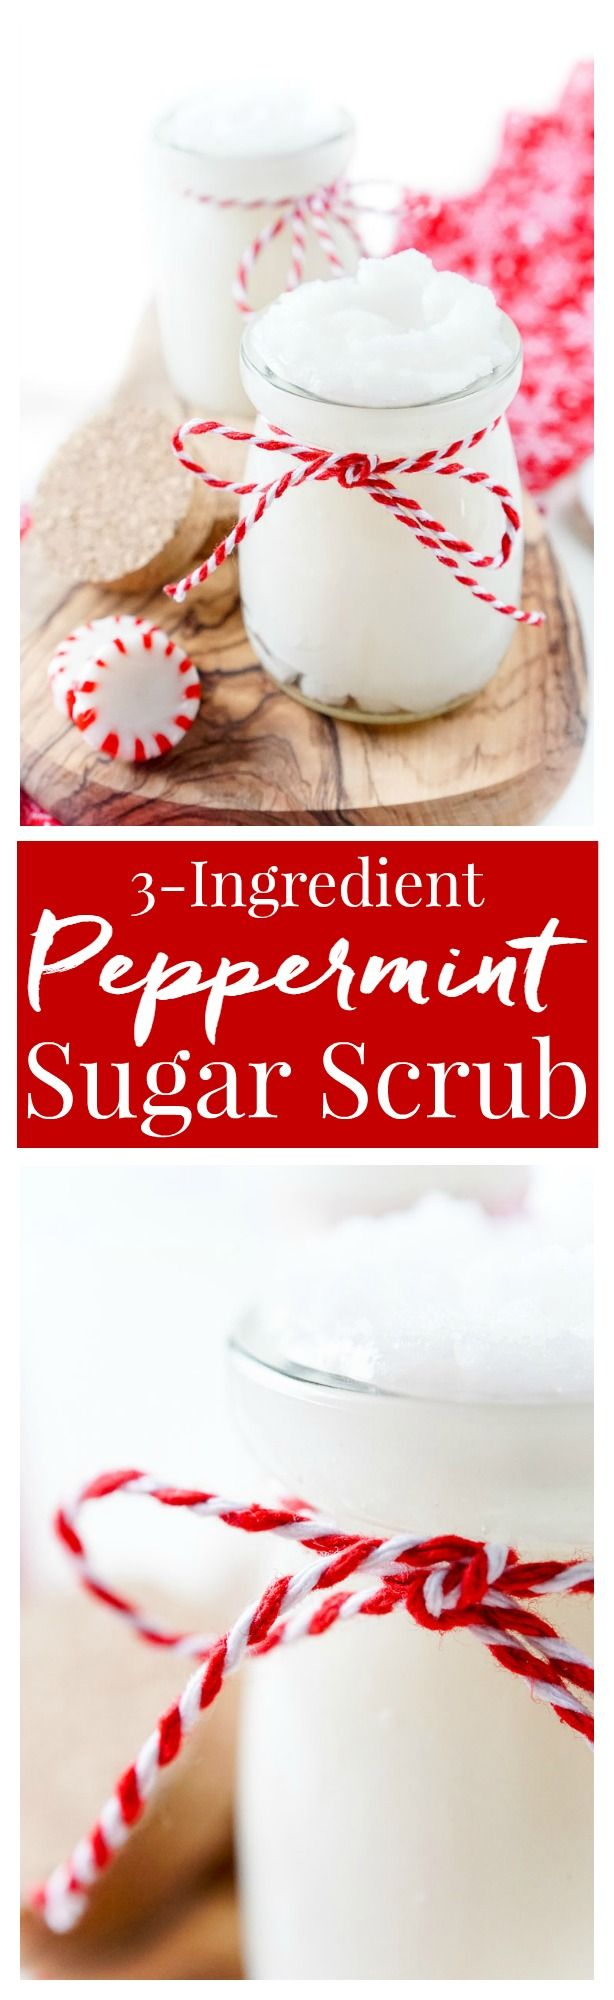 This 3-Ingredient Peppermint Sugar Scrub made my skin feel AMAZING! It's great for soothing tired muscles and reviving dry skin, it's also an easy DIY gift that can be made in less than 10 minutes!                                                                                                                                                                                 More